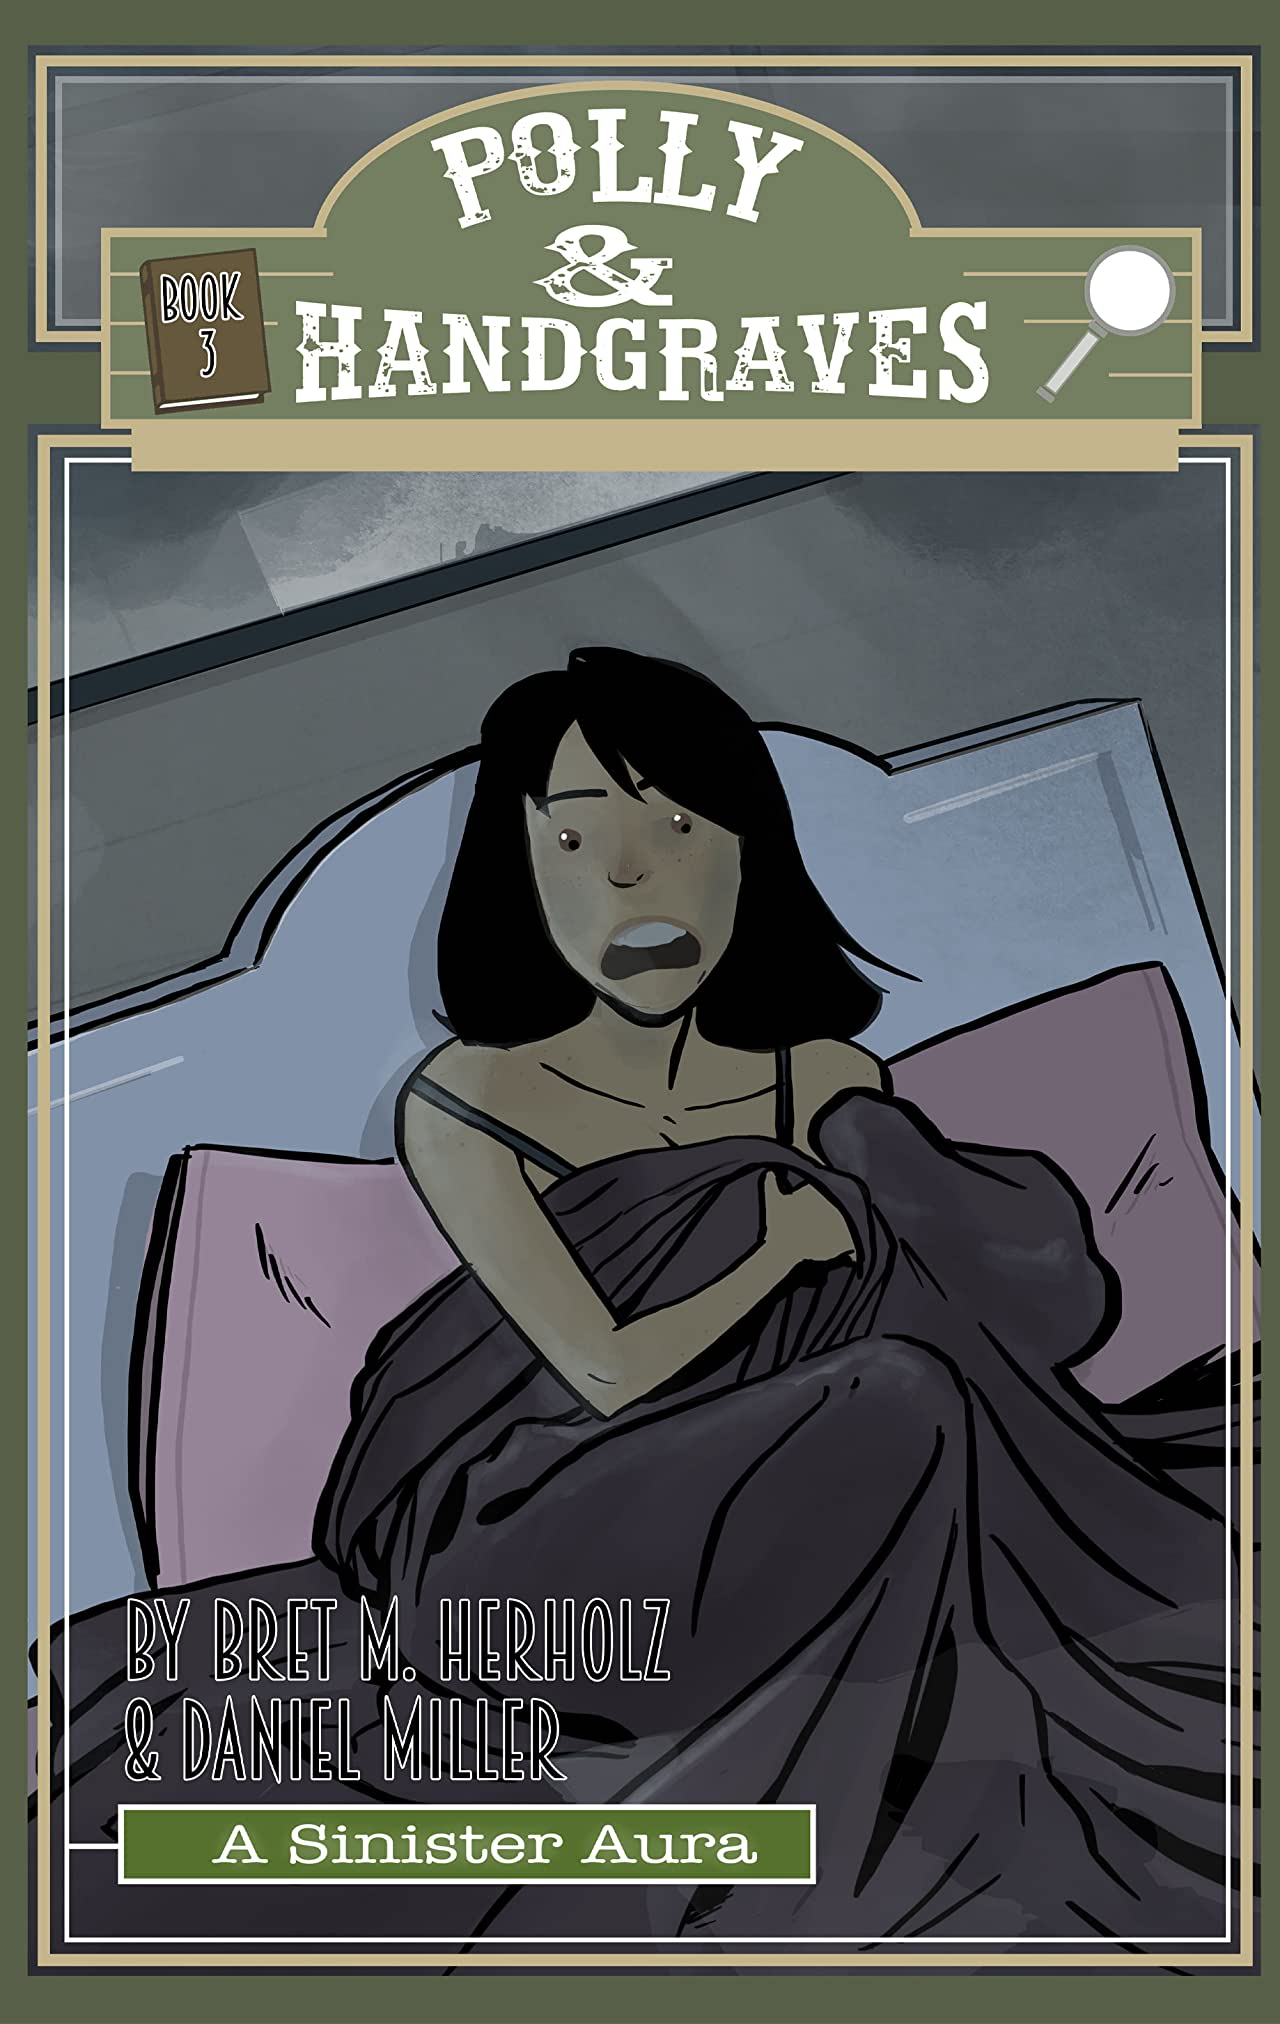 Polly and Hangraves #3